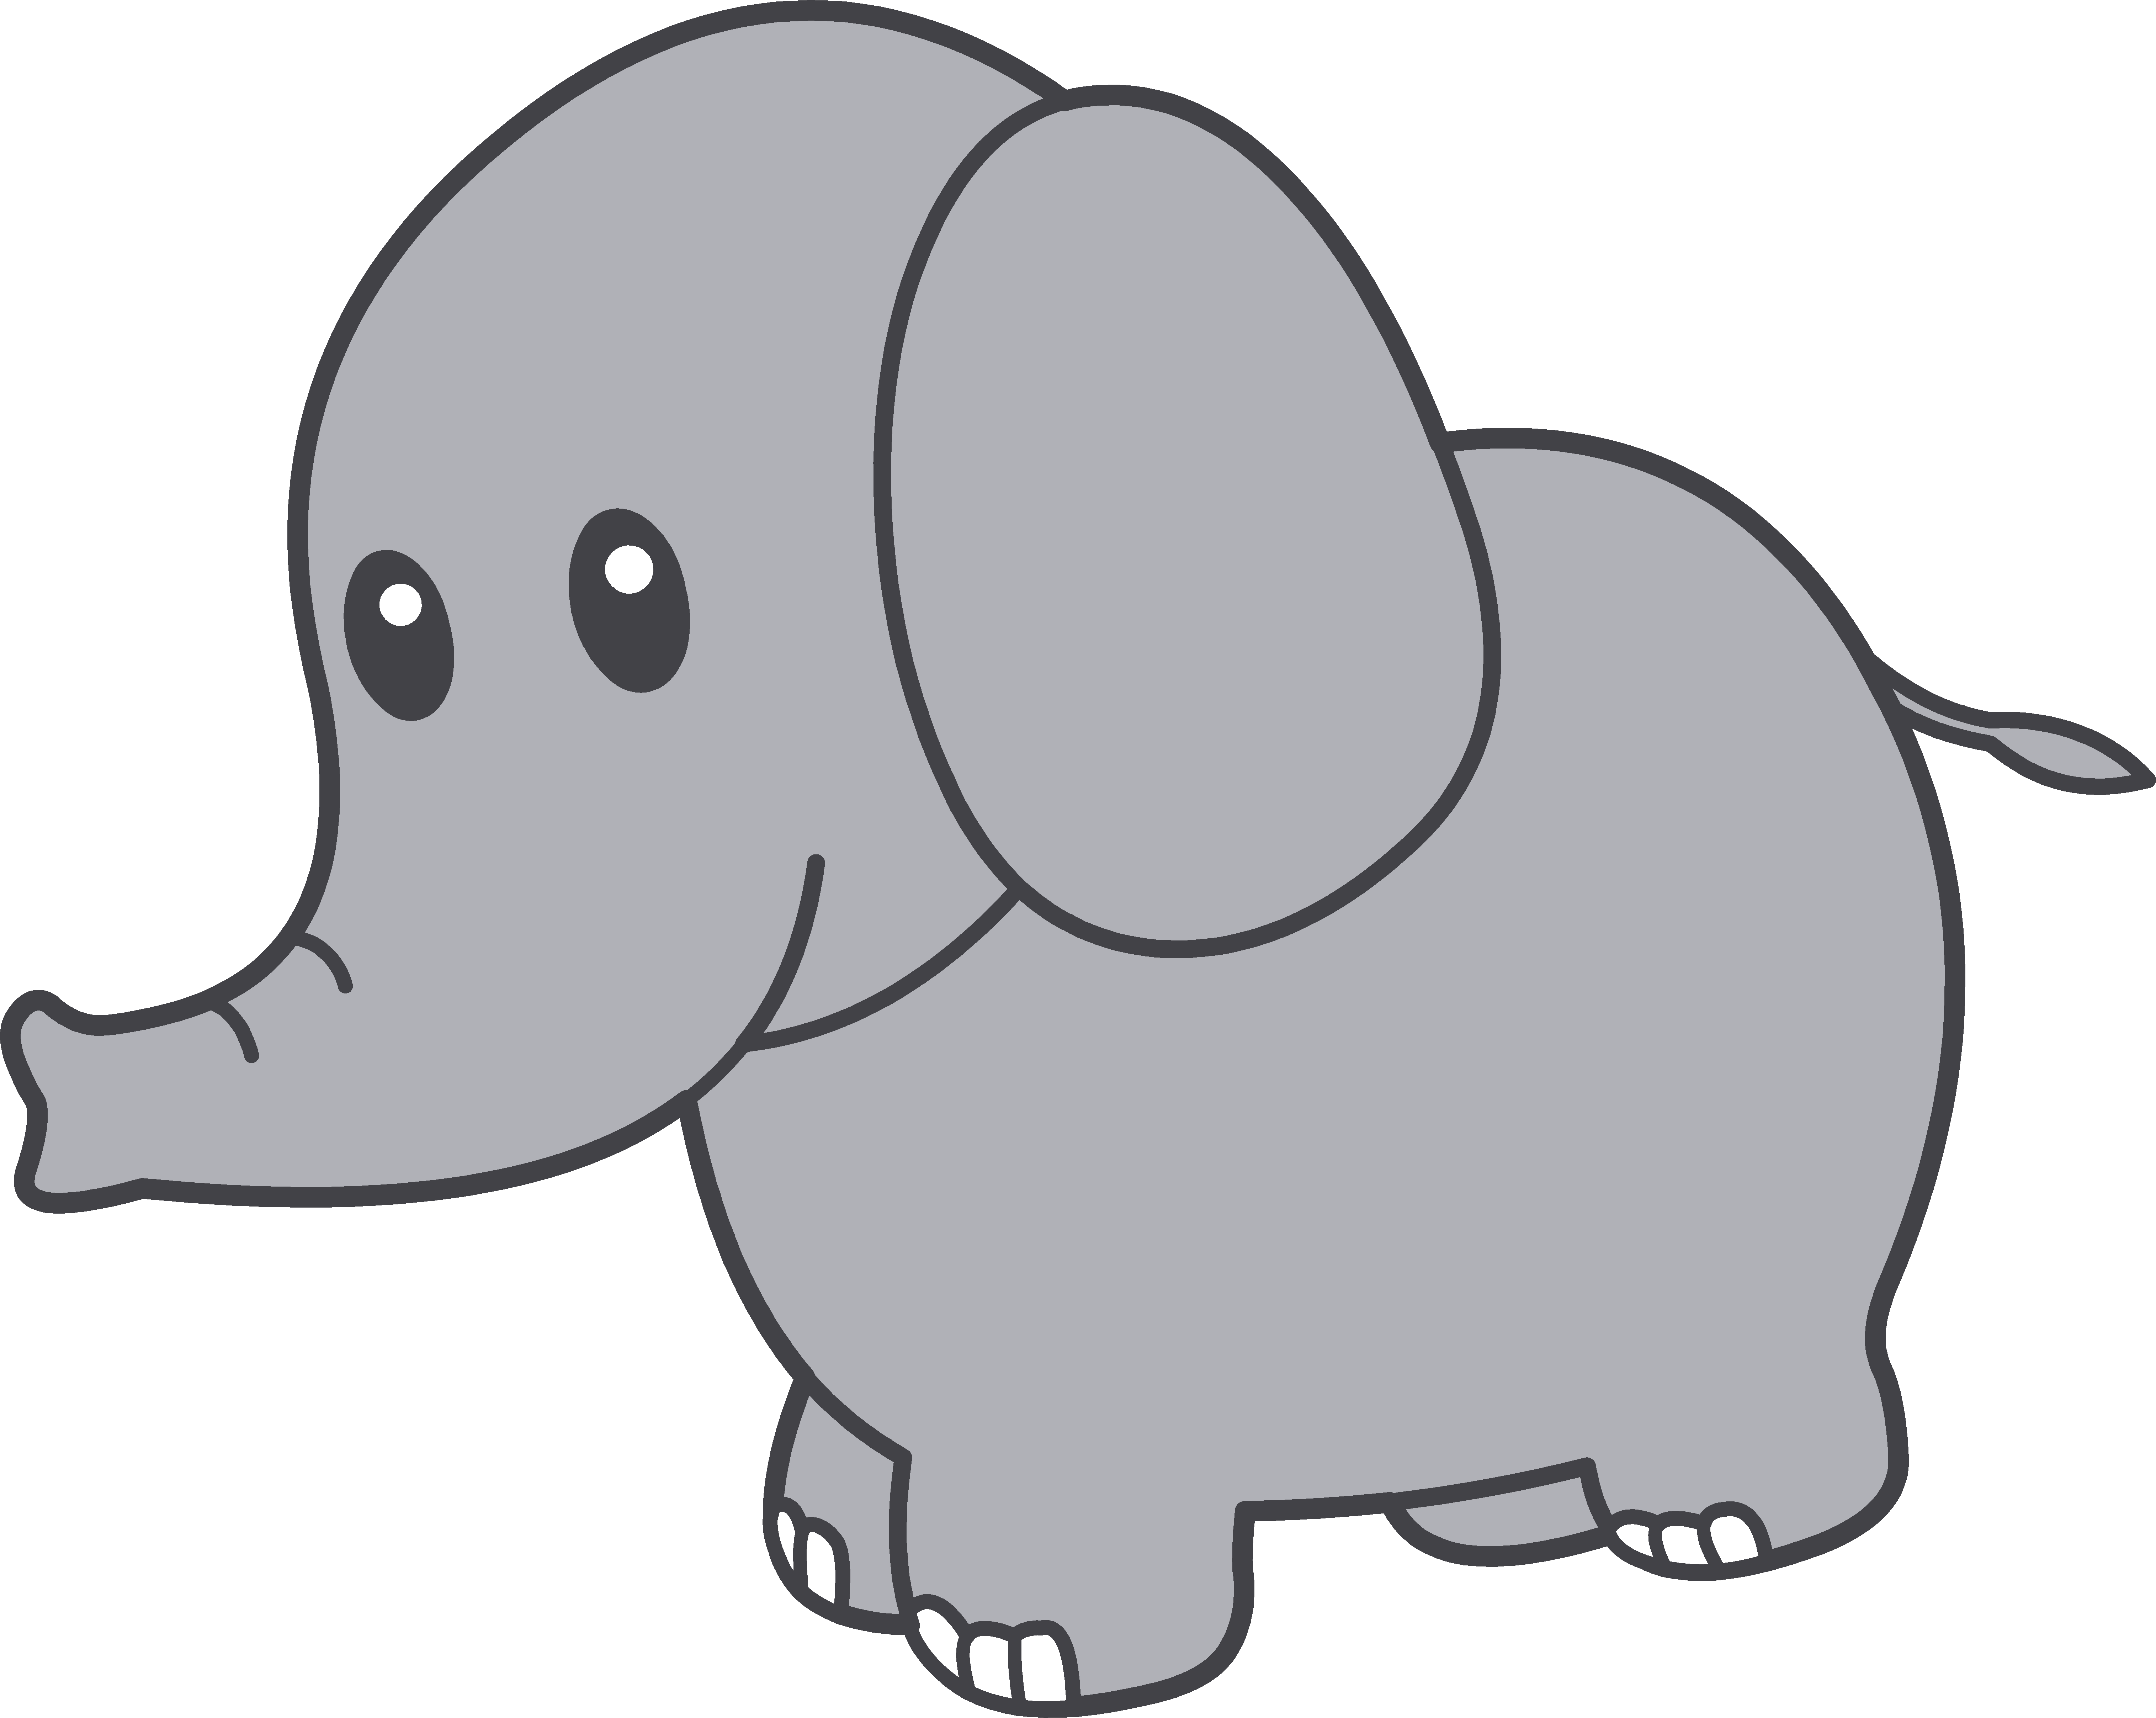 Free Cute Elephant Clipart, Download Free Clip Art, Free.